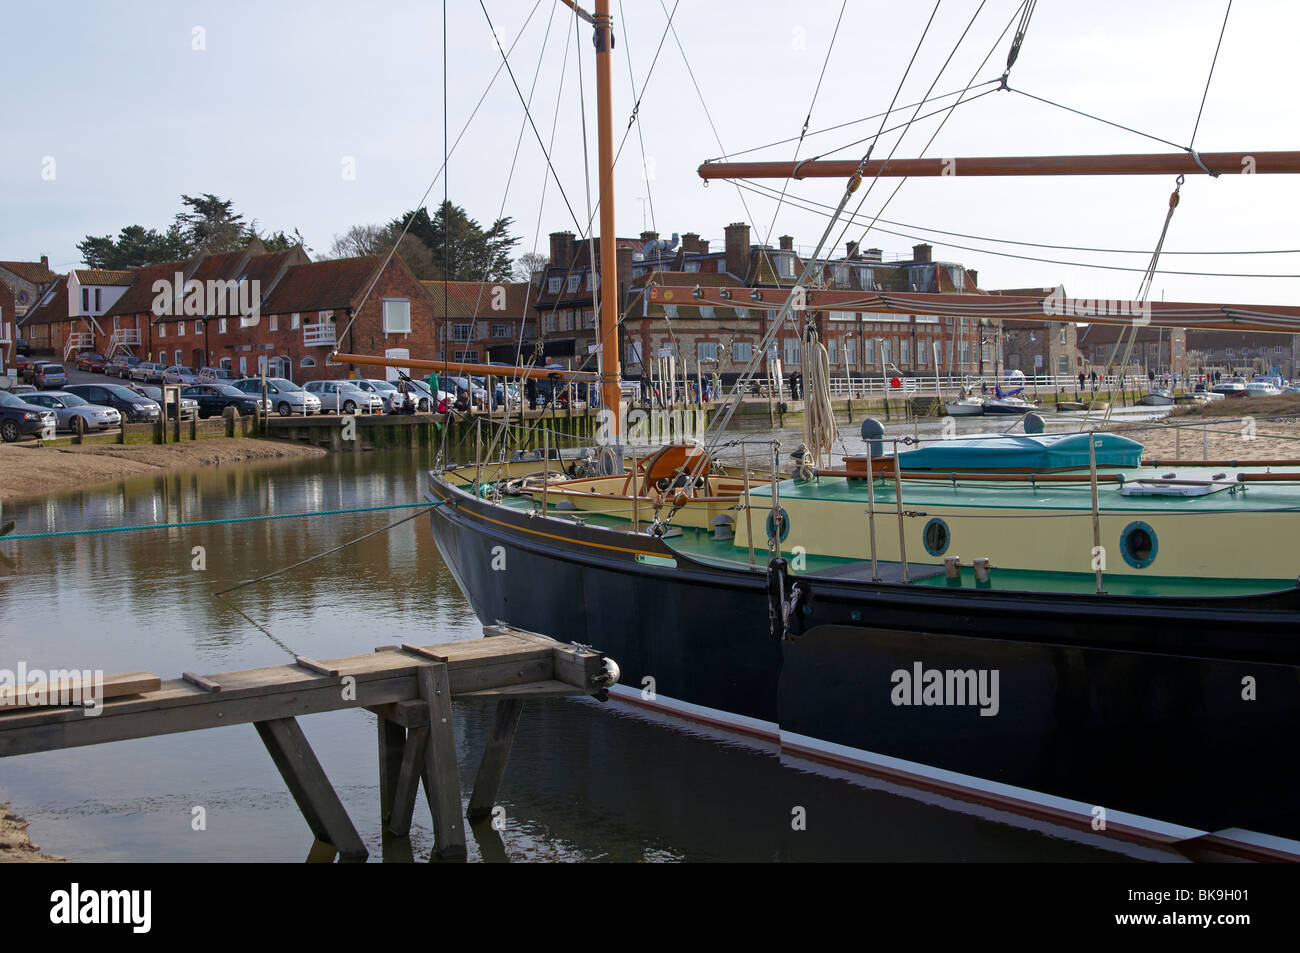 Blakeney harbour on the coast of North Norfolk with moored boats in the creek and against the quay. Stock Photo